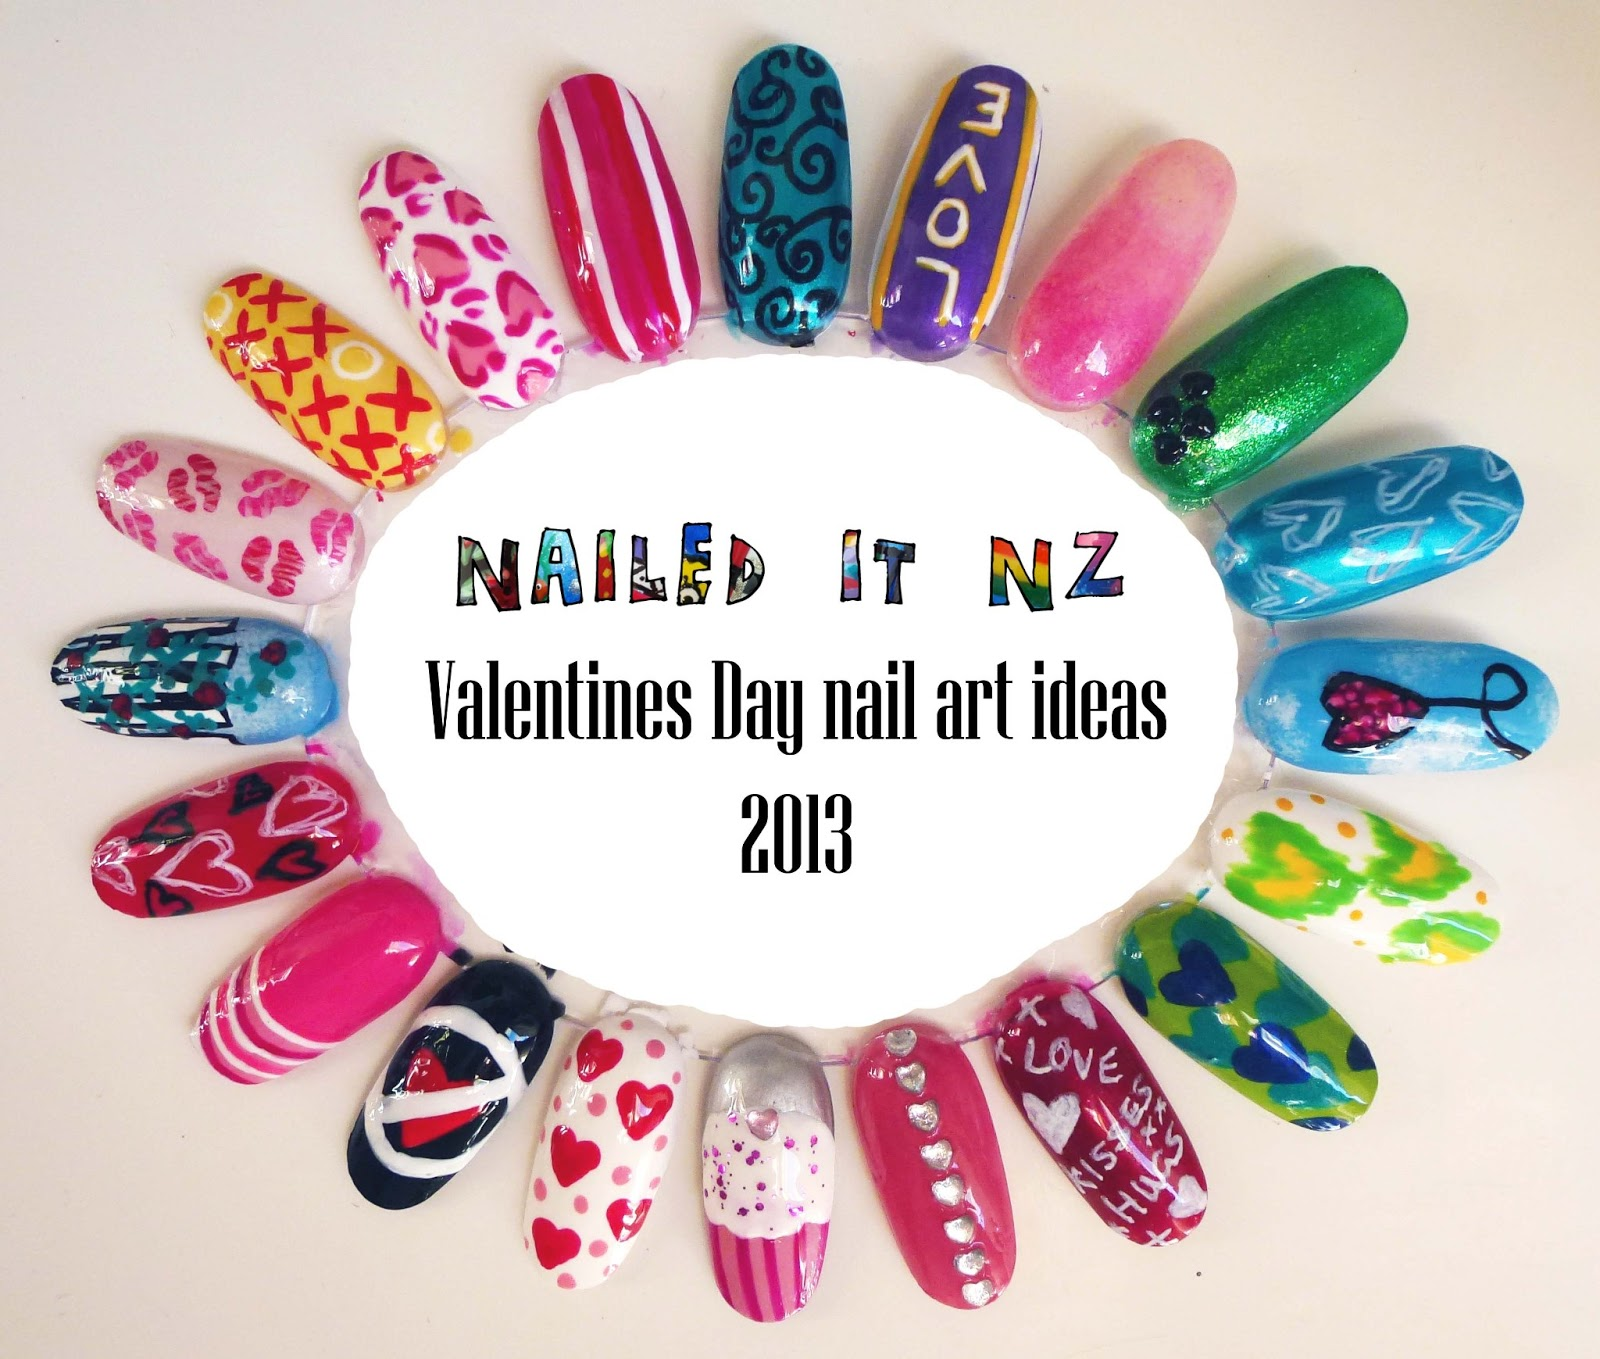 Valentines day nail art ideas + Born Pretty Store review